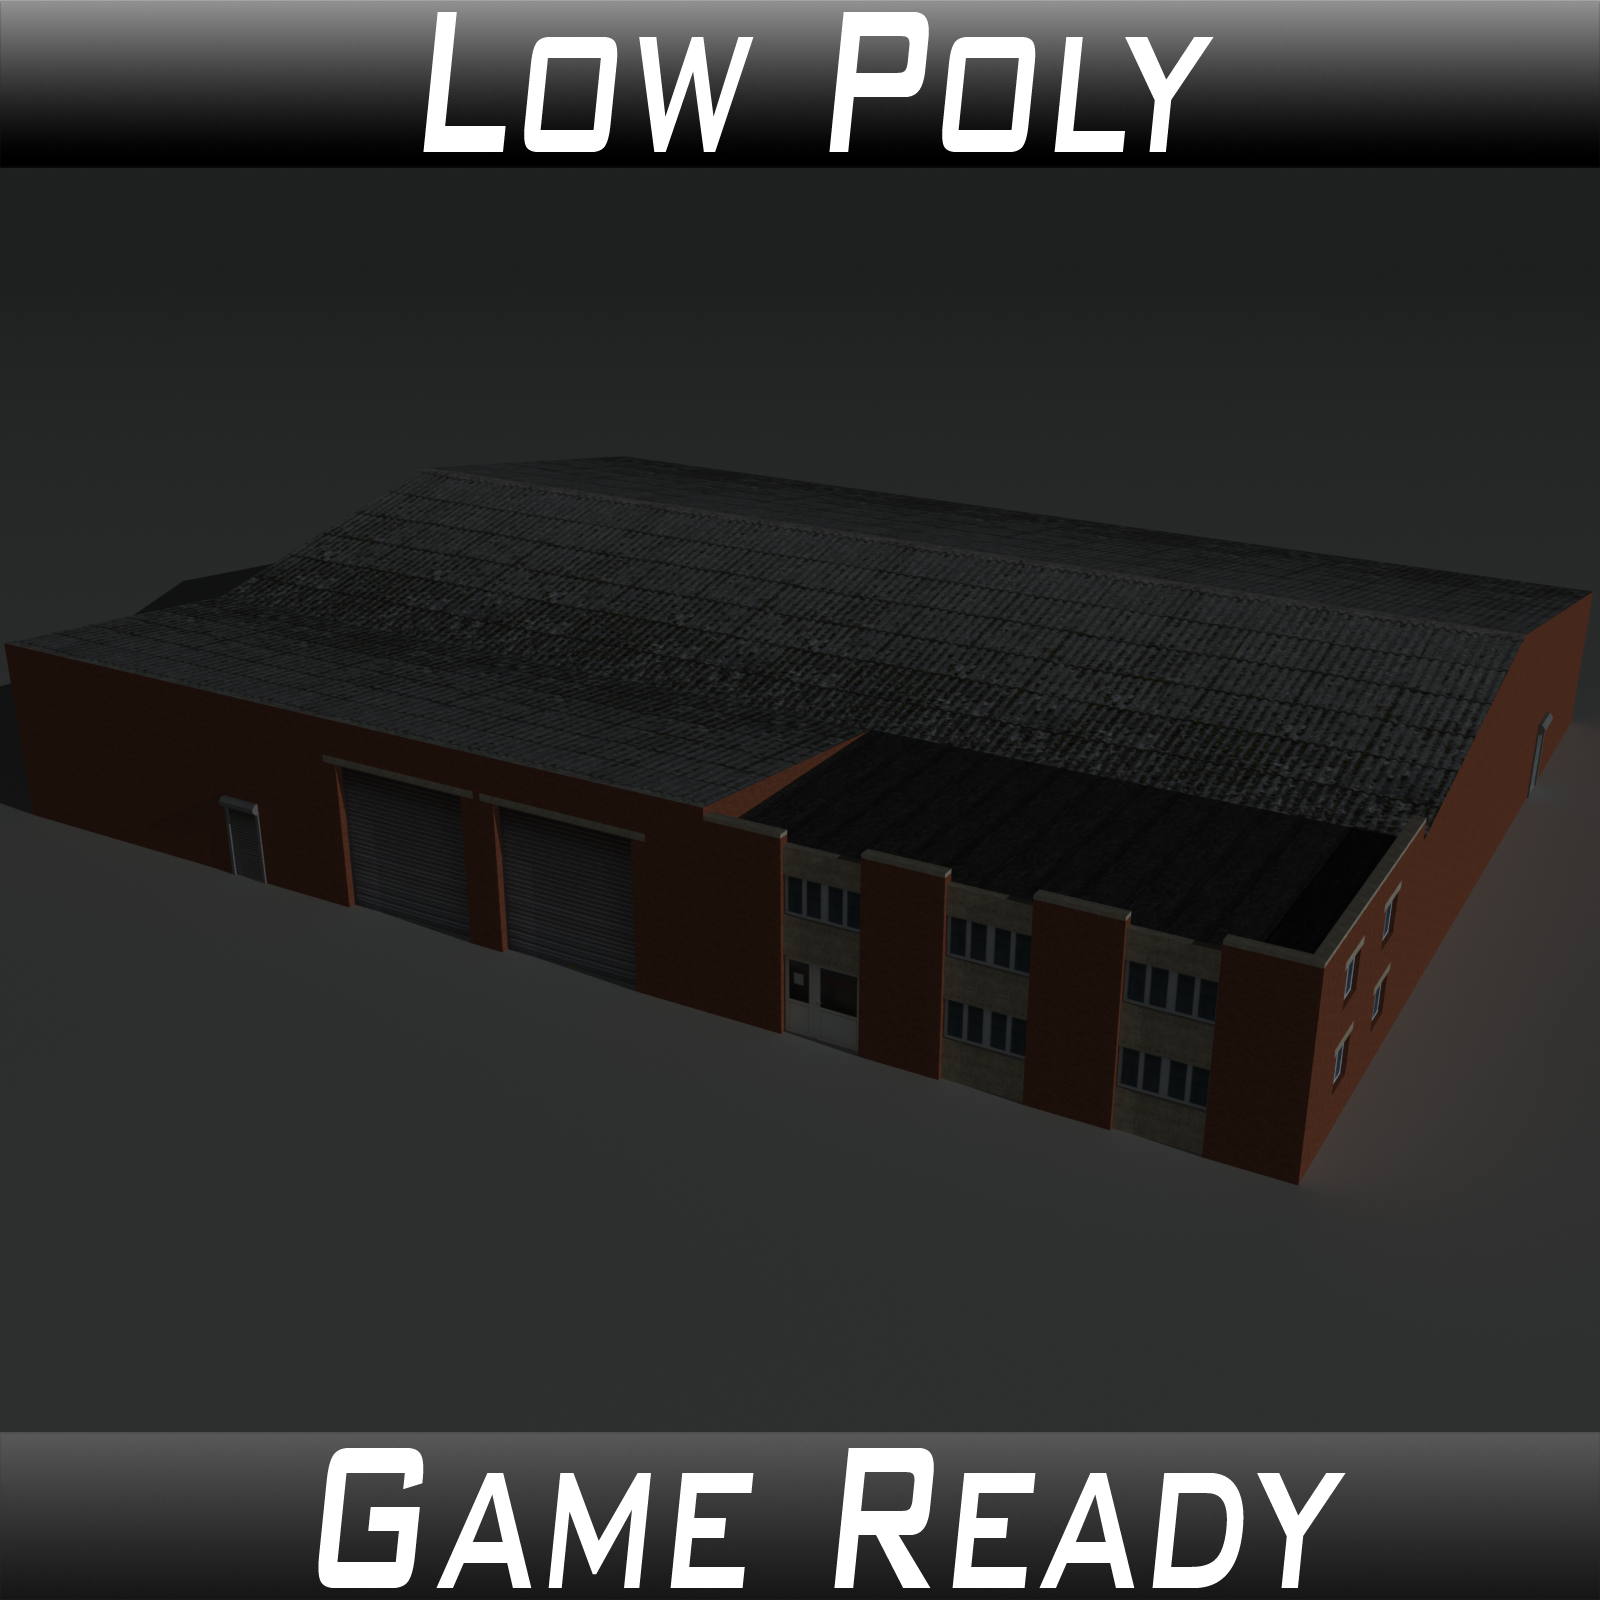 Low Poly Factory Building 21 - Extended Licence by 3dlands